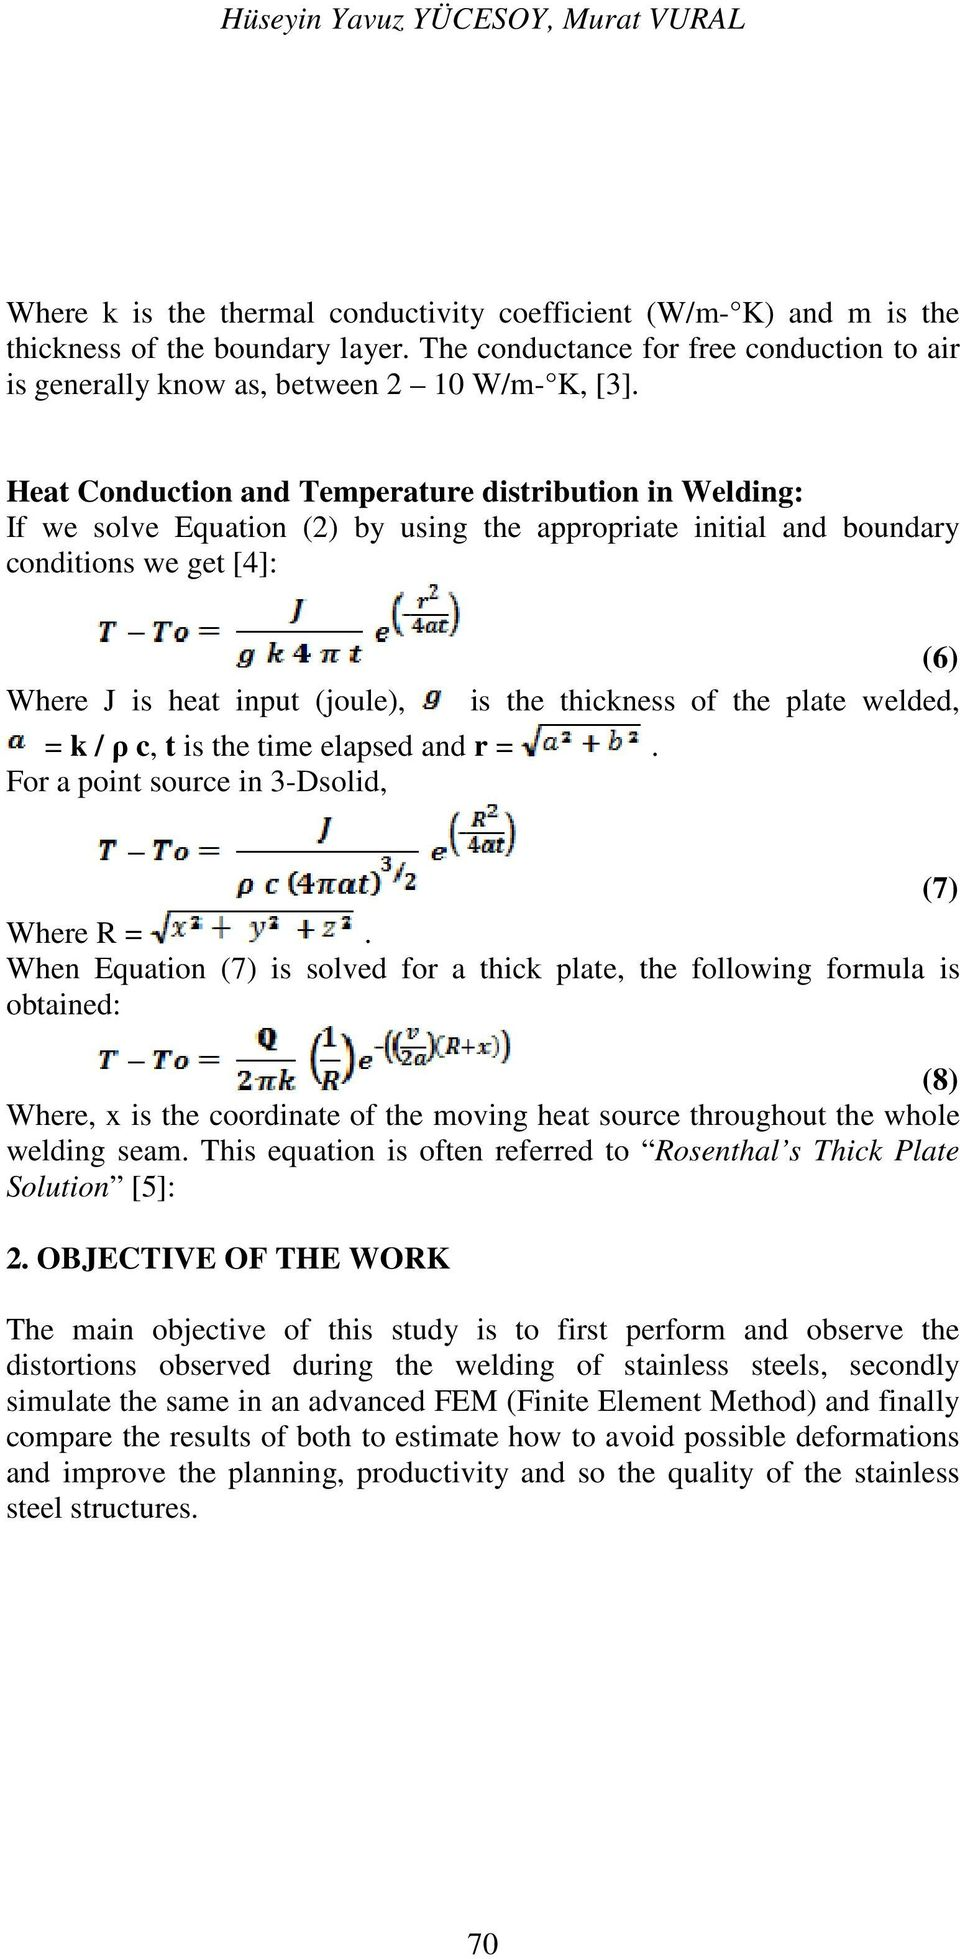 Heat Conduction and Temperature distribution in Welding: If we solve Equation (2) by using the appropriate initial and boundary conditions we get [4]: Where J is heat input (joule), = k / ρ c, t is